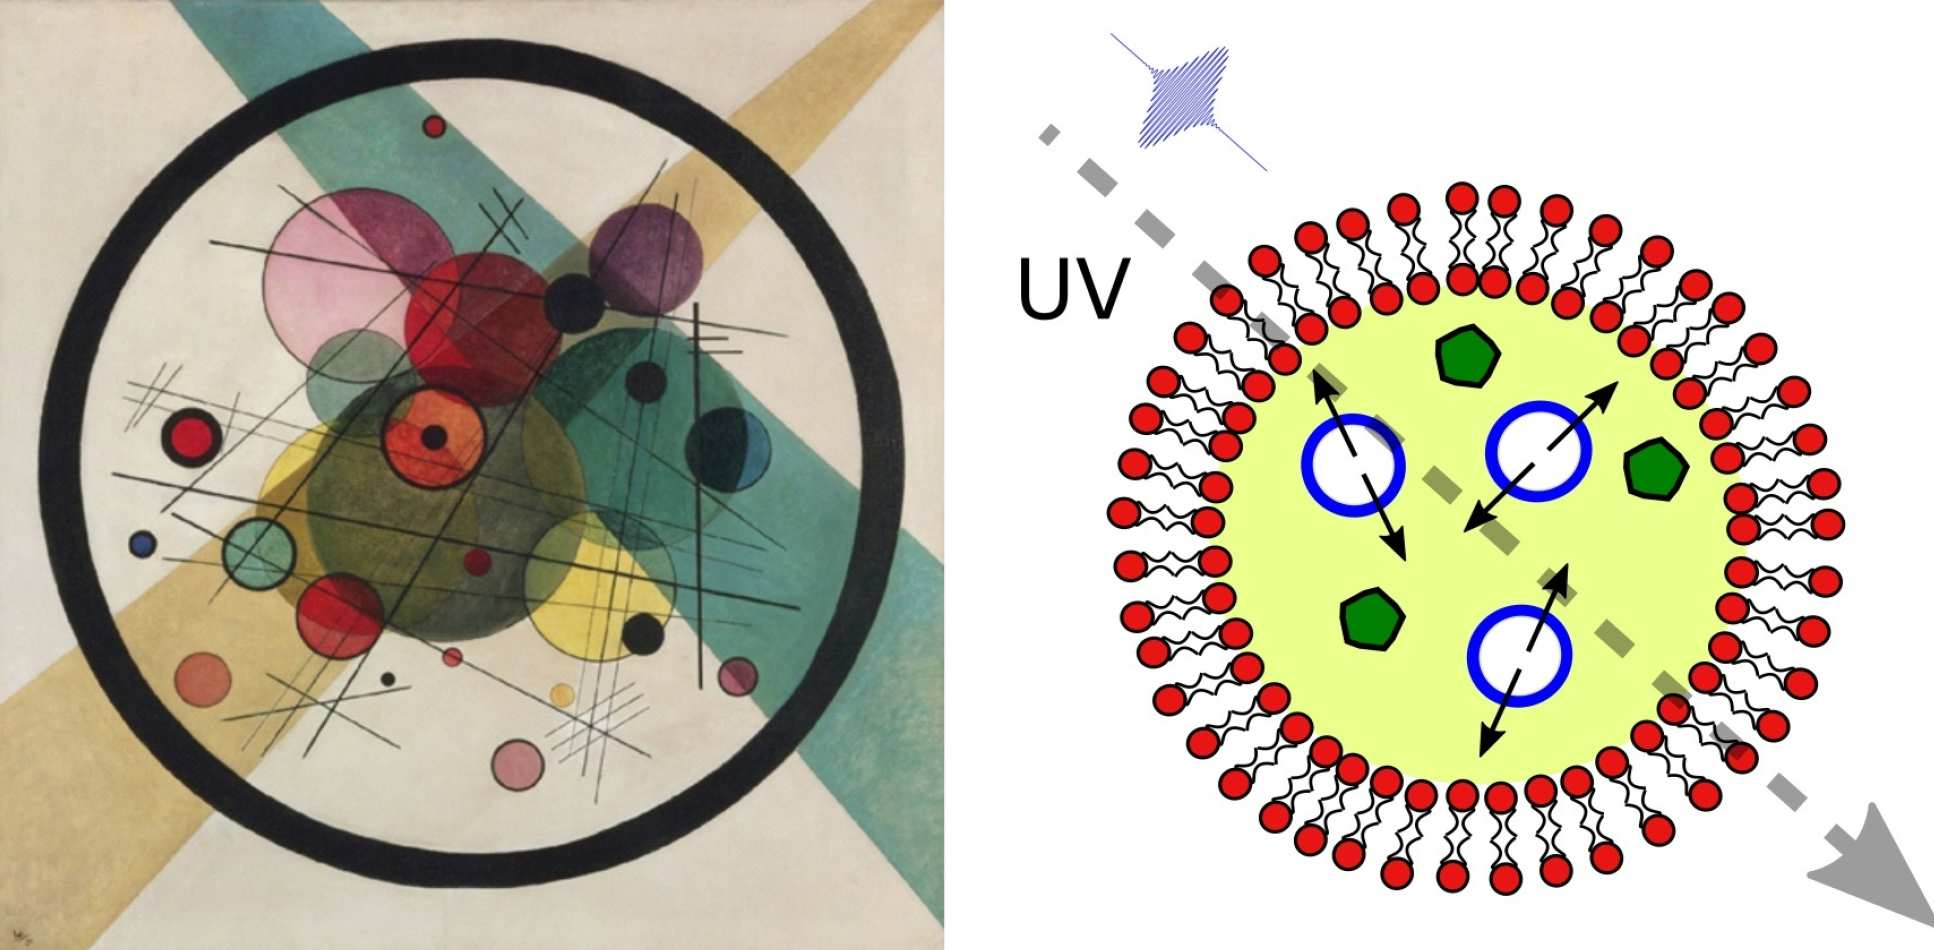 A Kandinsky painting of circles and lines on the left, and an illustration of the nested vesicles on the right